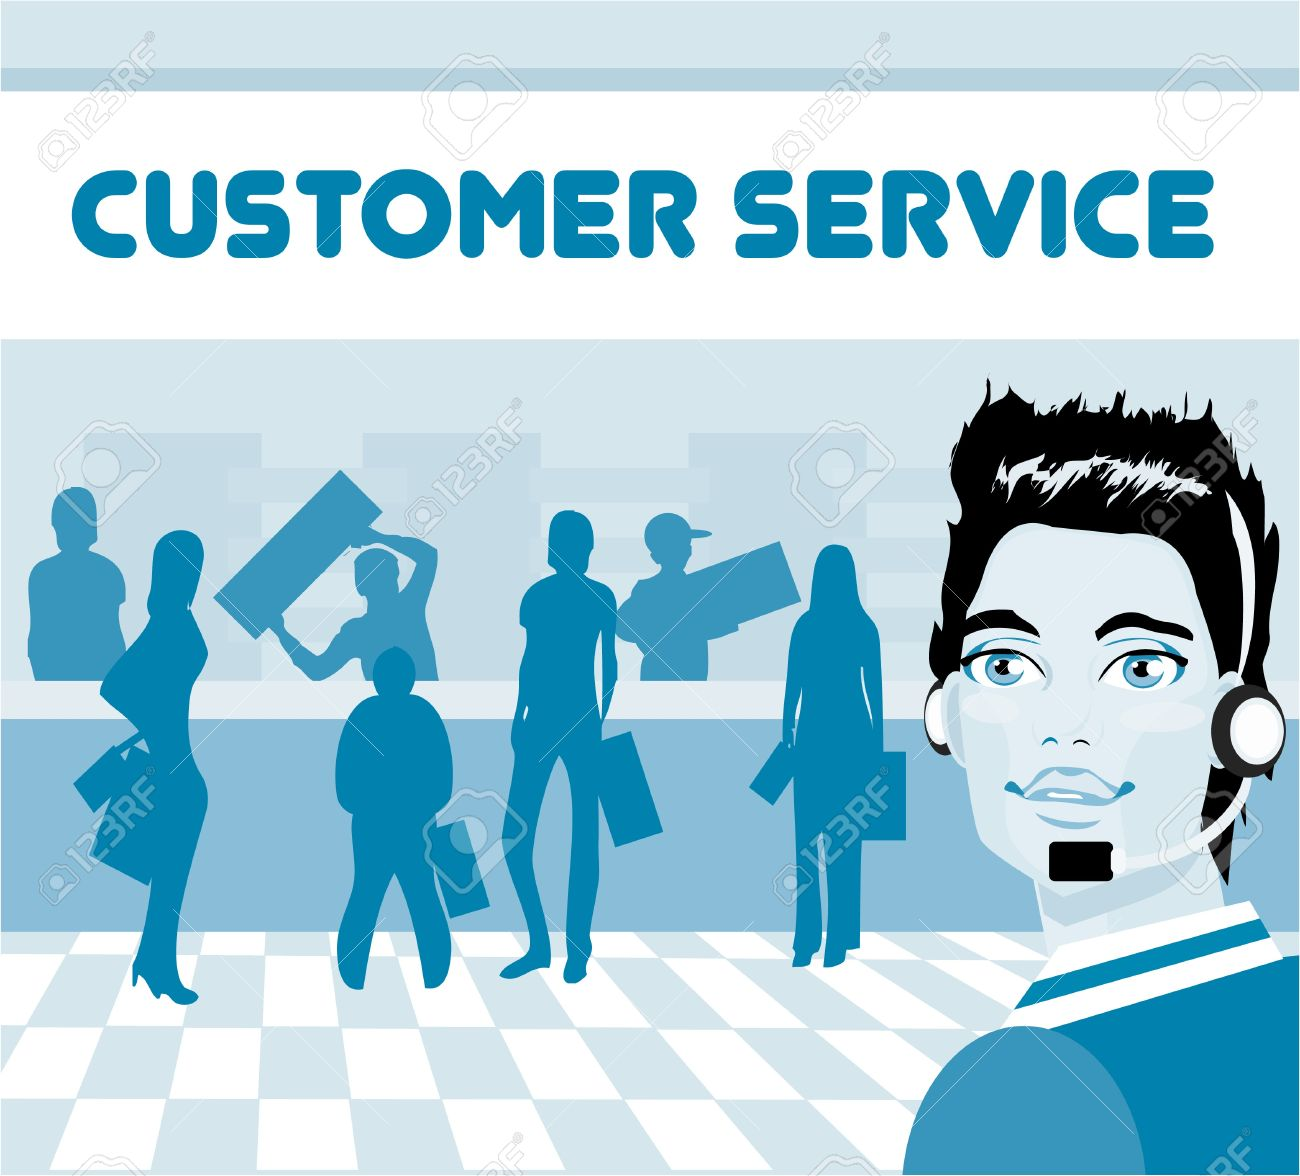 Customer service rep clipart graphic free Charming Customer Service Representative With Headset On, Group ... graphic free